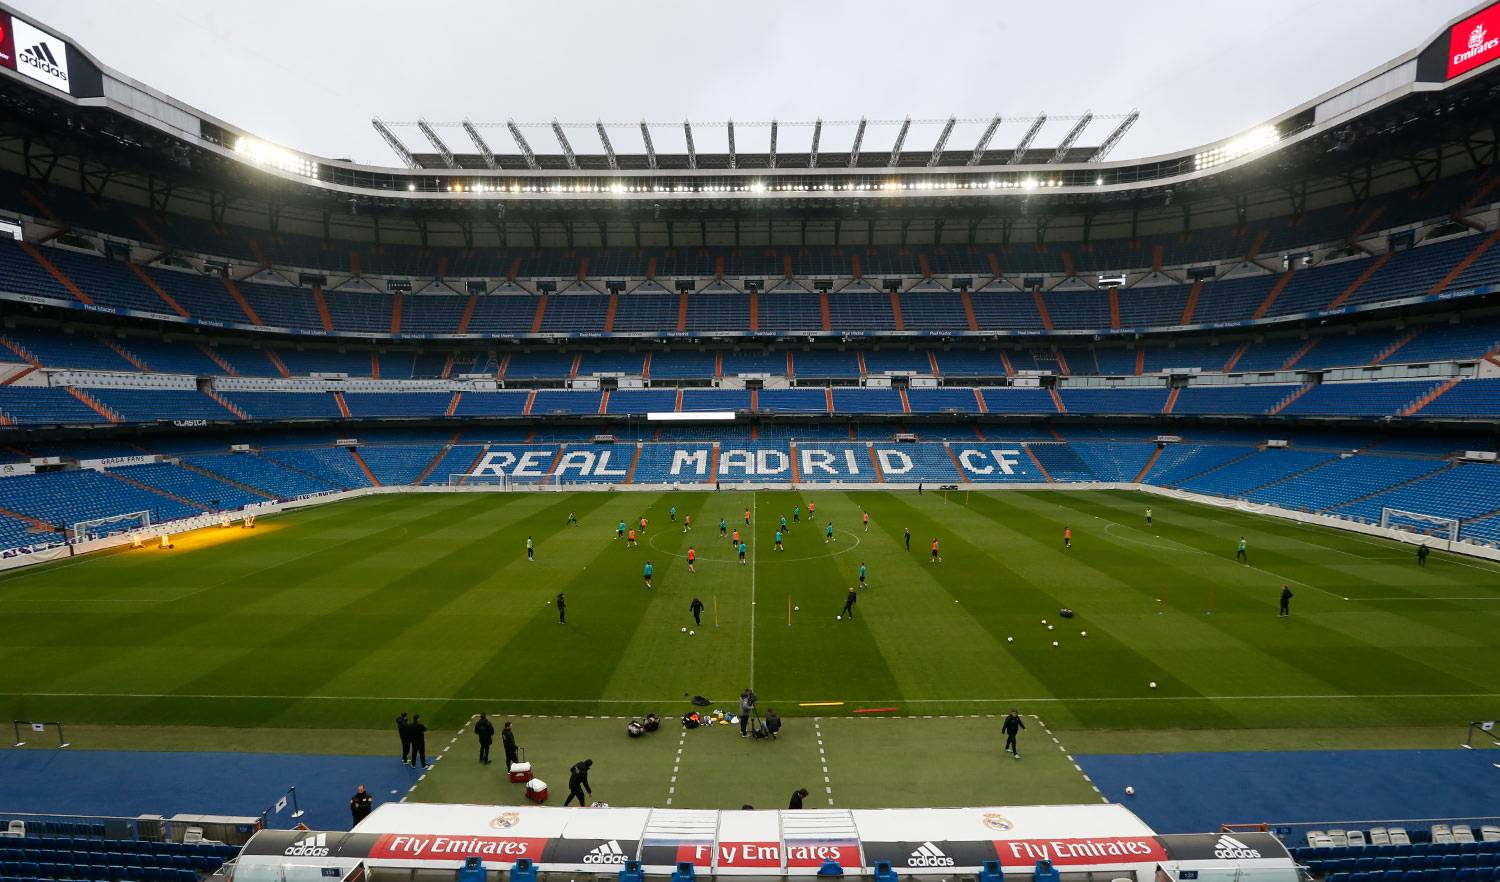 Real Madrid - Entrenamiento del Real Madrid en el estadio Santiago Bernabéu - 31-12-2017